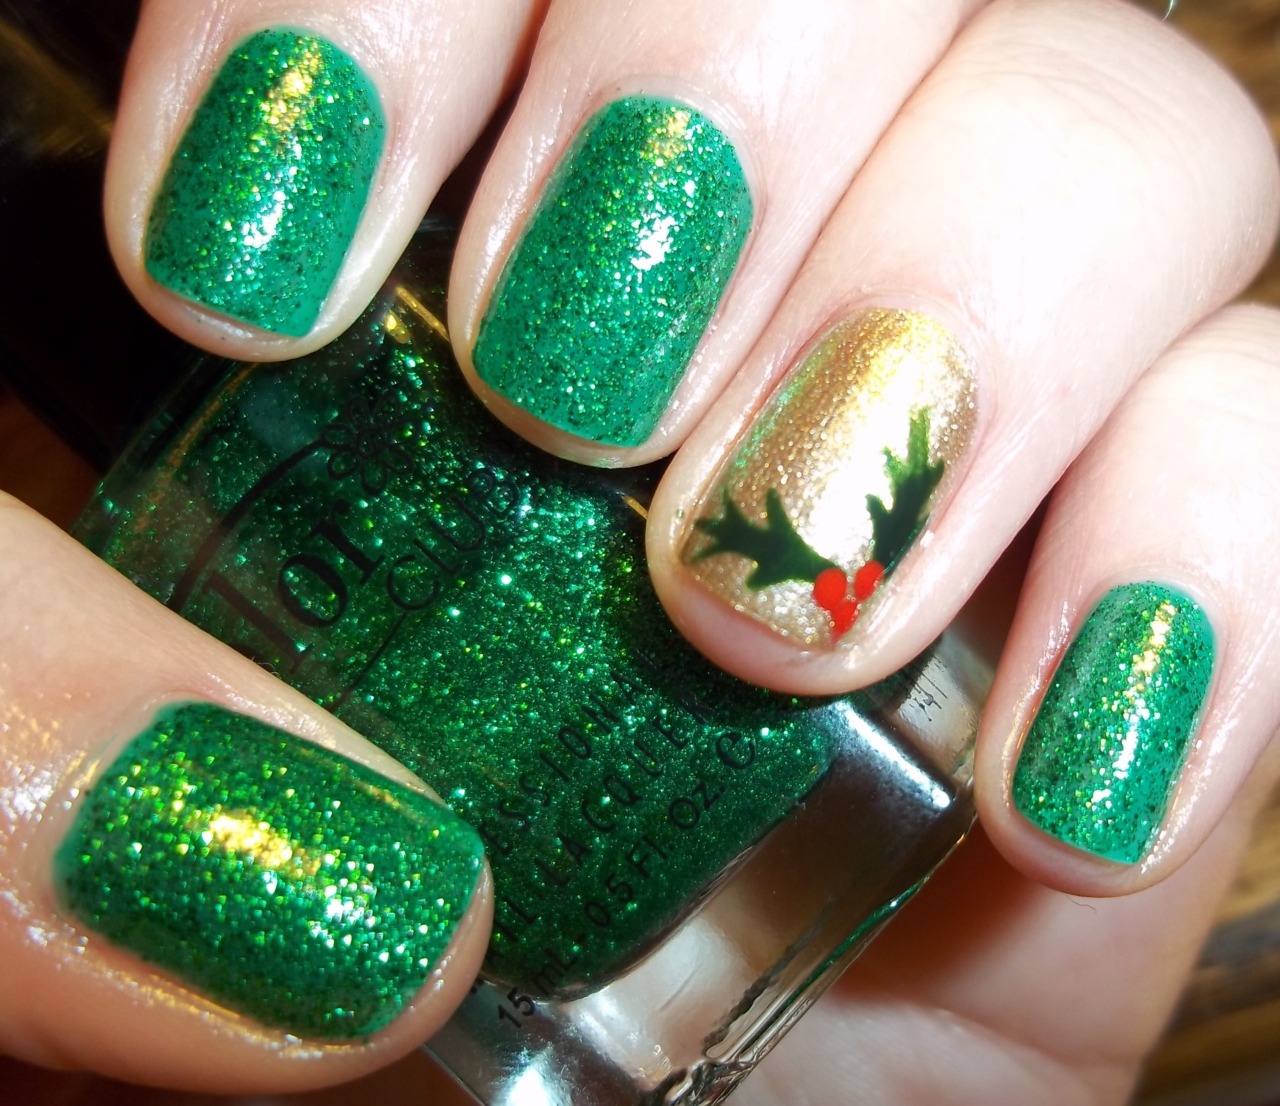 Not sure the name of the green glitter. Some no name Color Club polish. The gold is OPI Glitzerland.